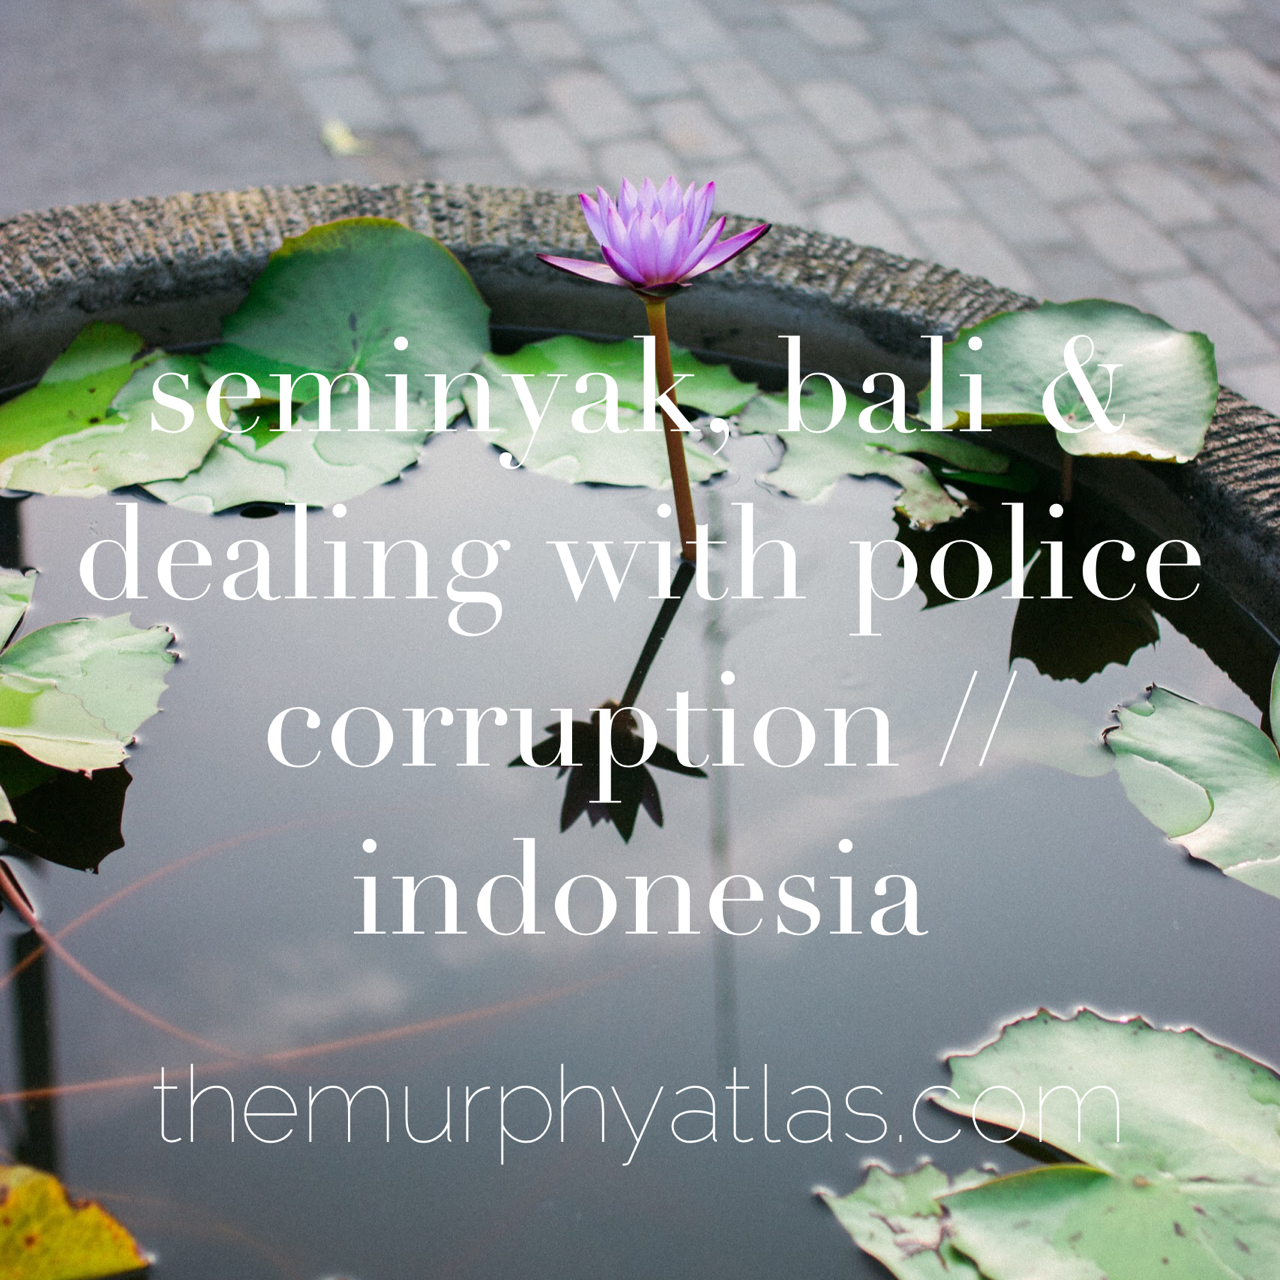 Seminyak City Guide and Bali Corruption